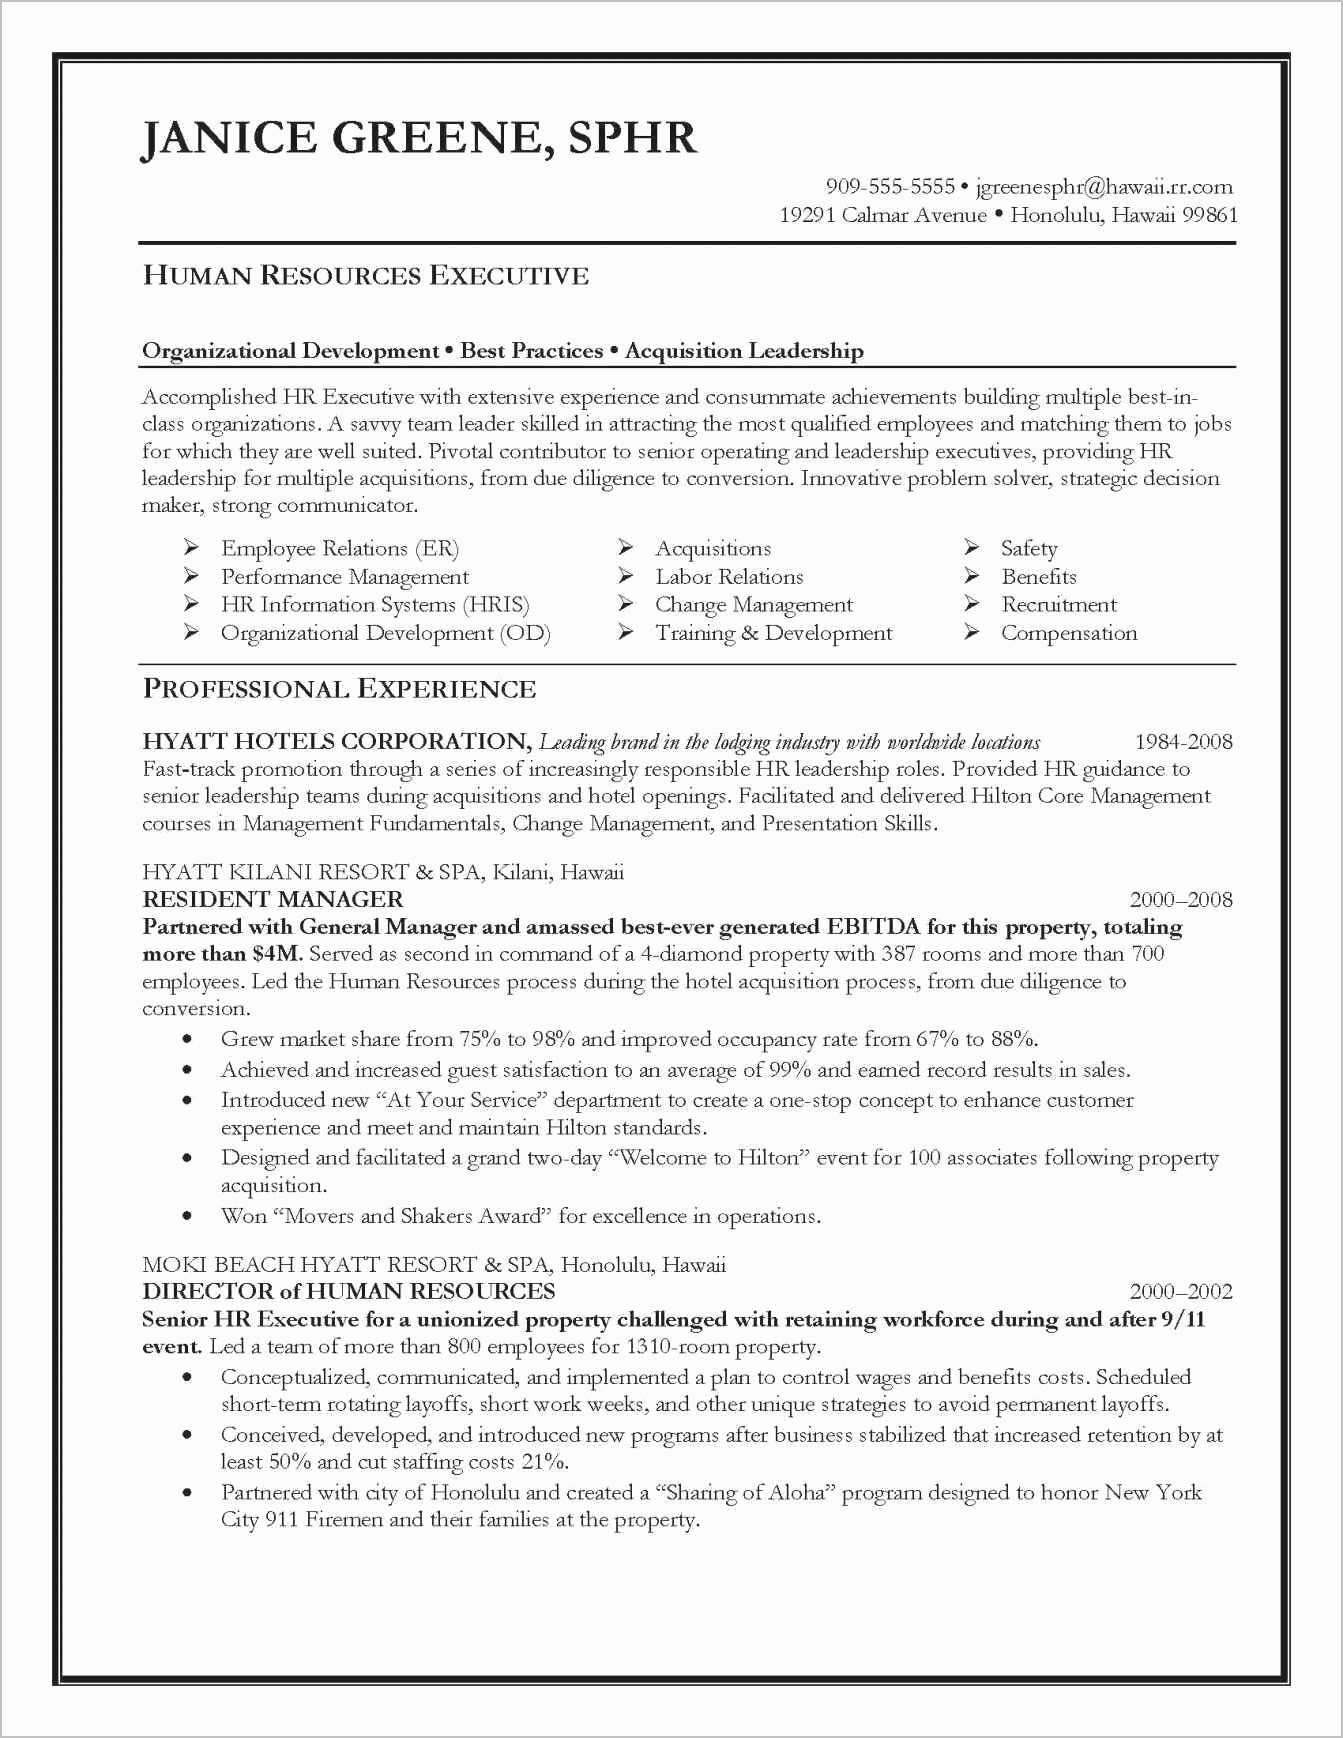 substitute teacher duties resume example-Substitute Teacher Duties Resume Good Summary for Resume Fresh Fresh Resume 0d Resume for Substitute 1-i